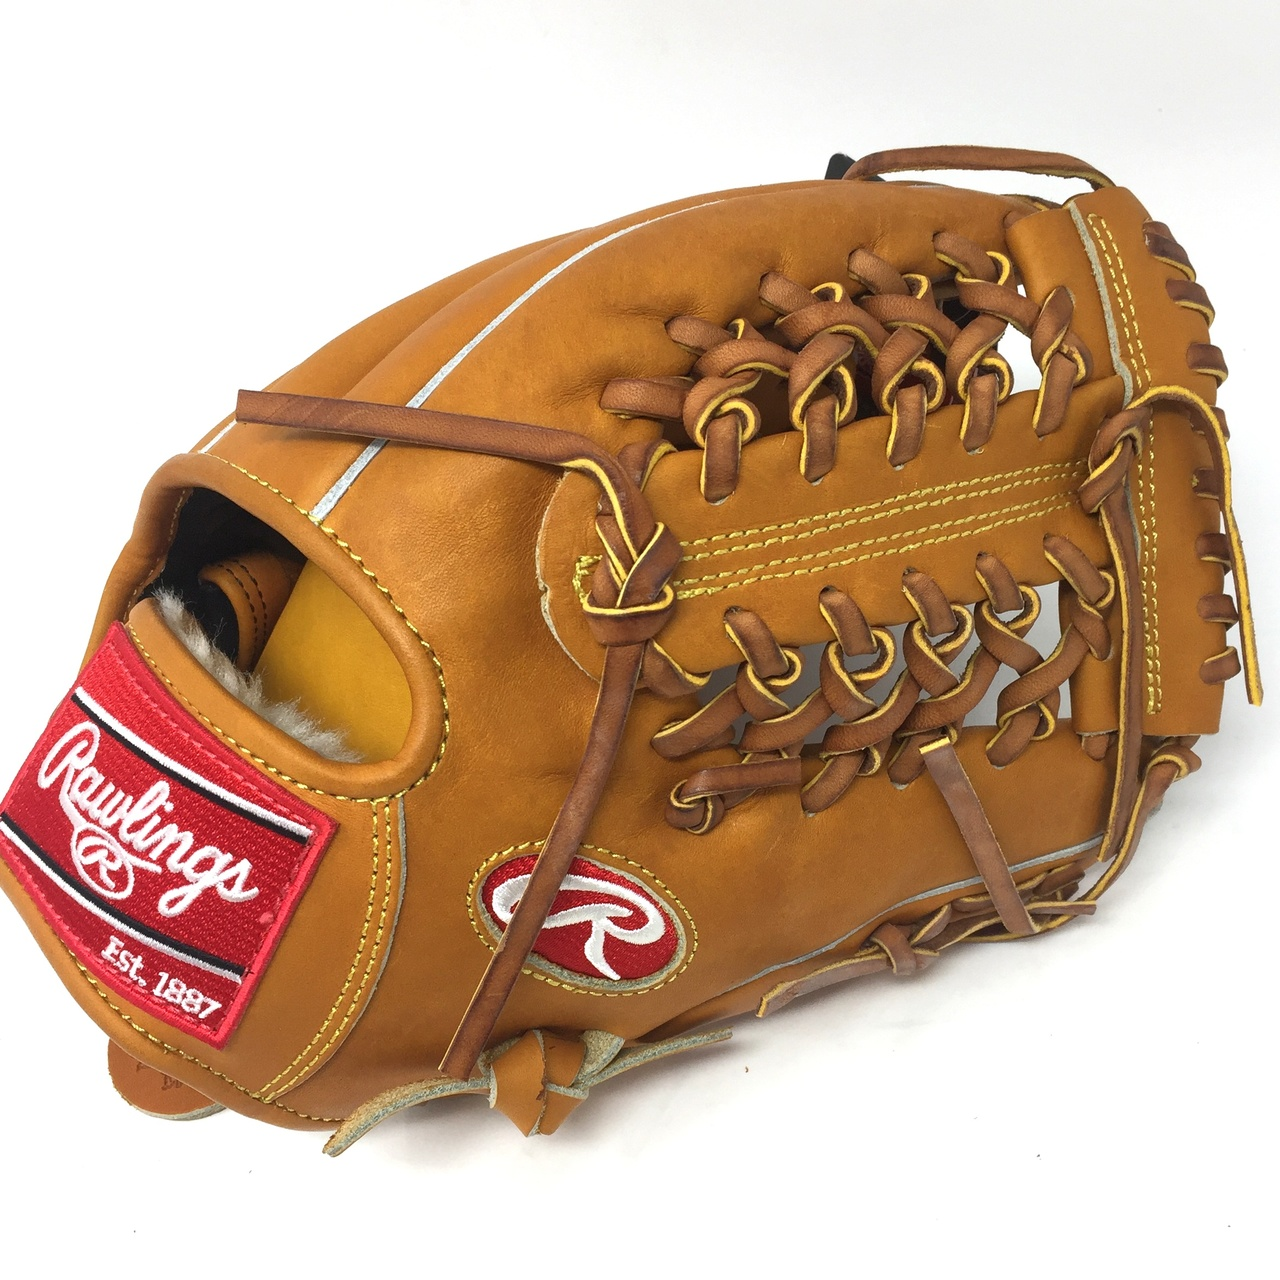 rawlings-heart-of-hide-pr0200-4-baseball-glove-11-5-right-hand-throw PRO200-4-RightHandThrow   The Rawlings PRO200-4 Heart of the Hide Baseball Glove is 11.5